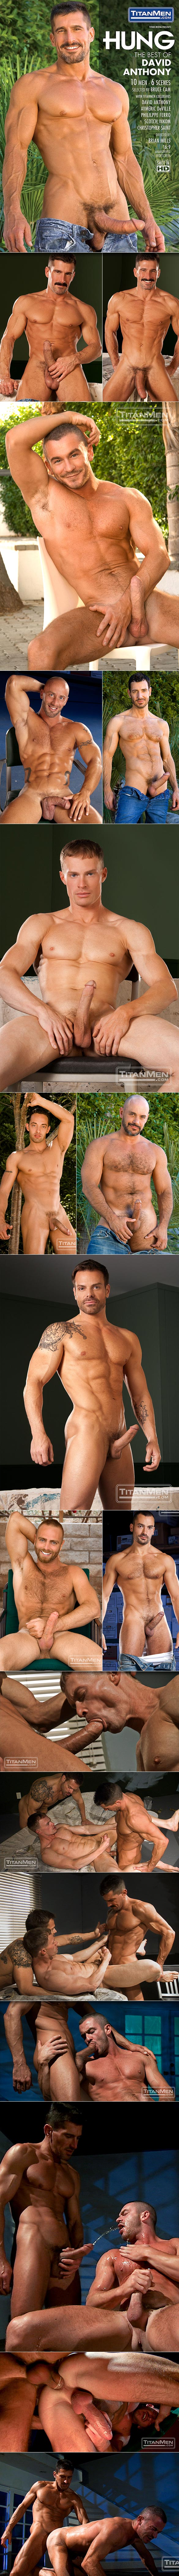 "TitanMen: ""Hung - The Best of David Anthony"""